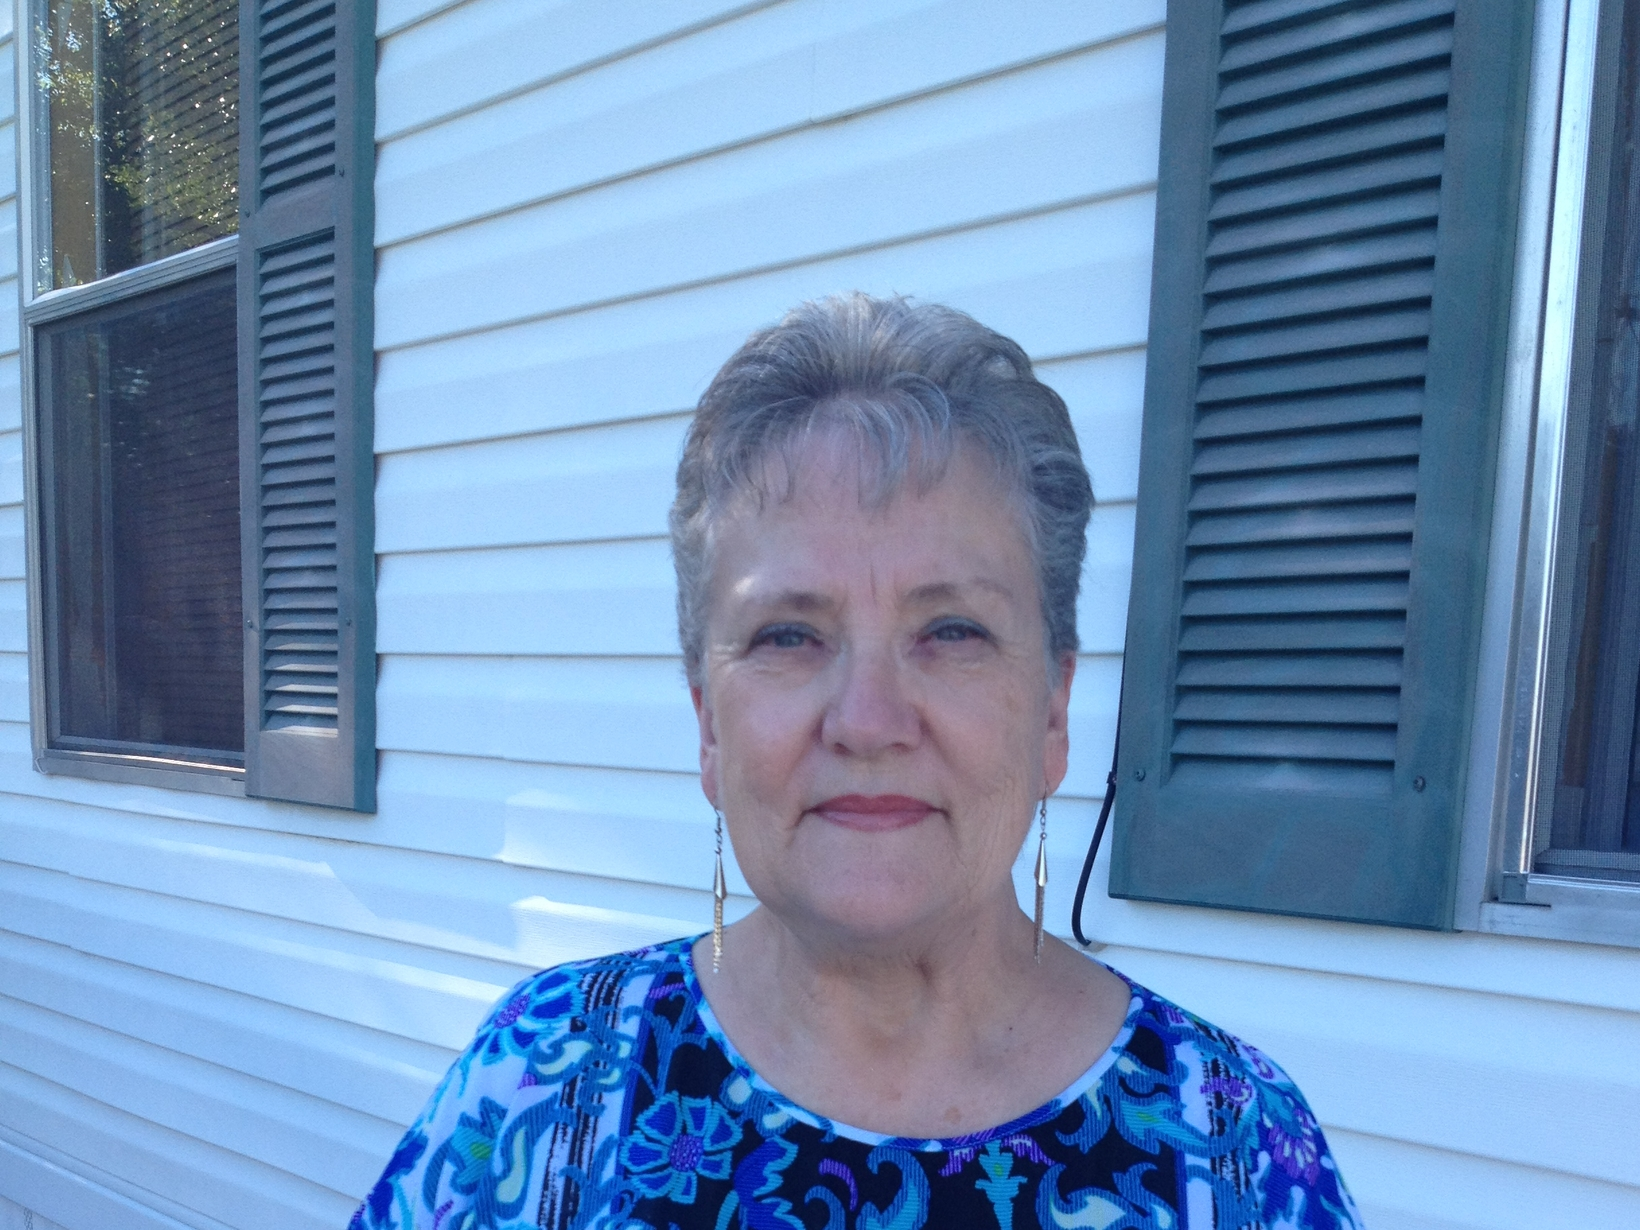 Patricia from Fort Worth, Texas, United States